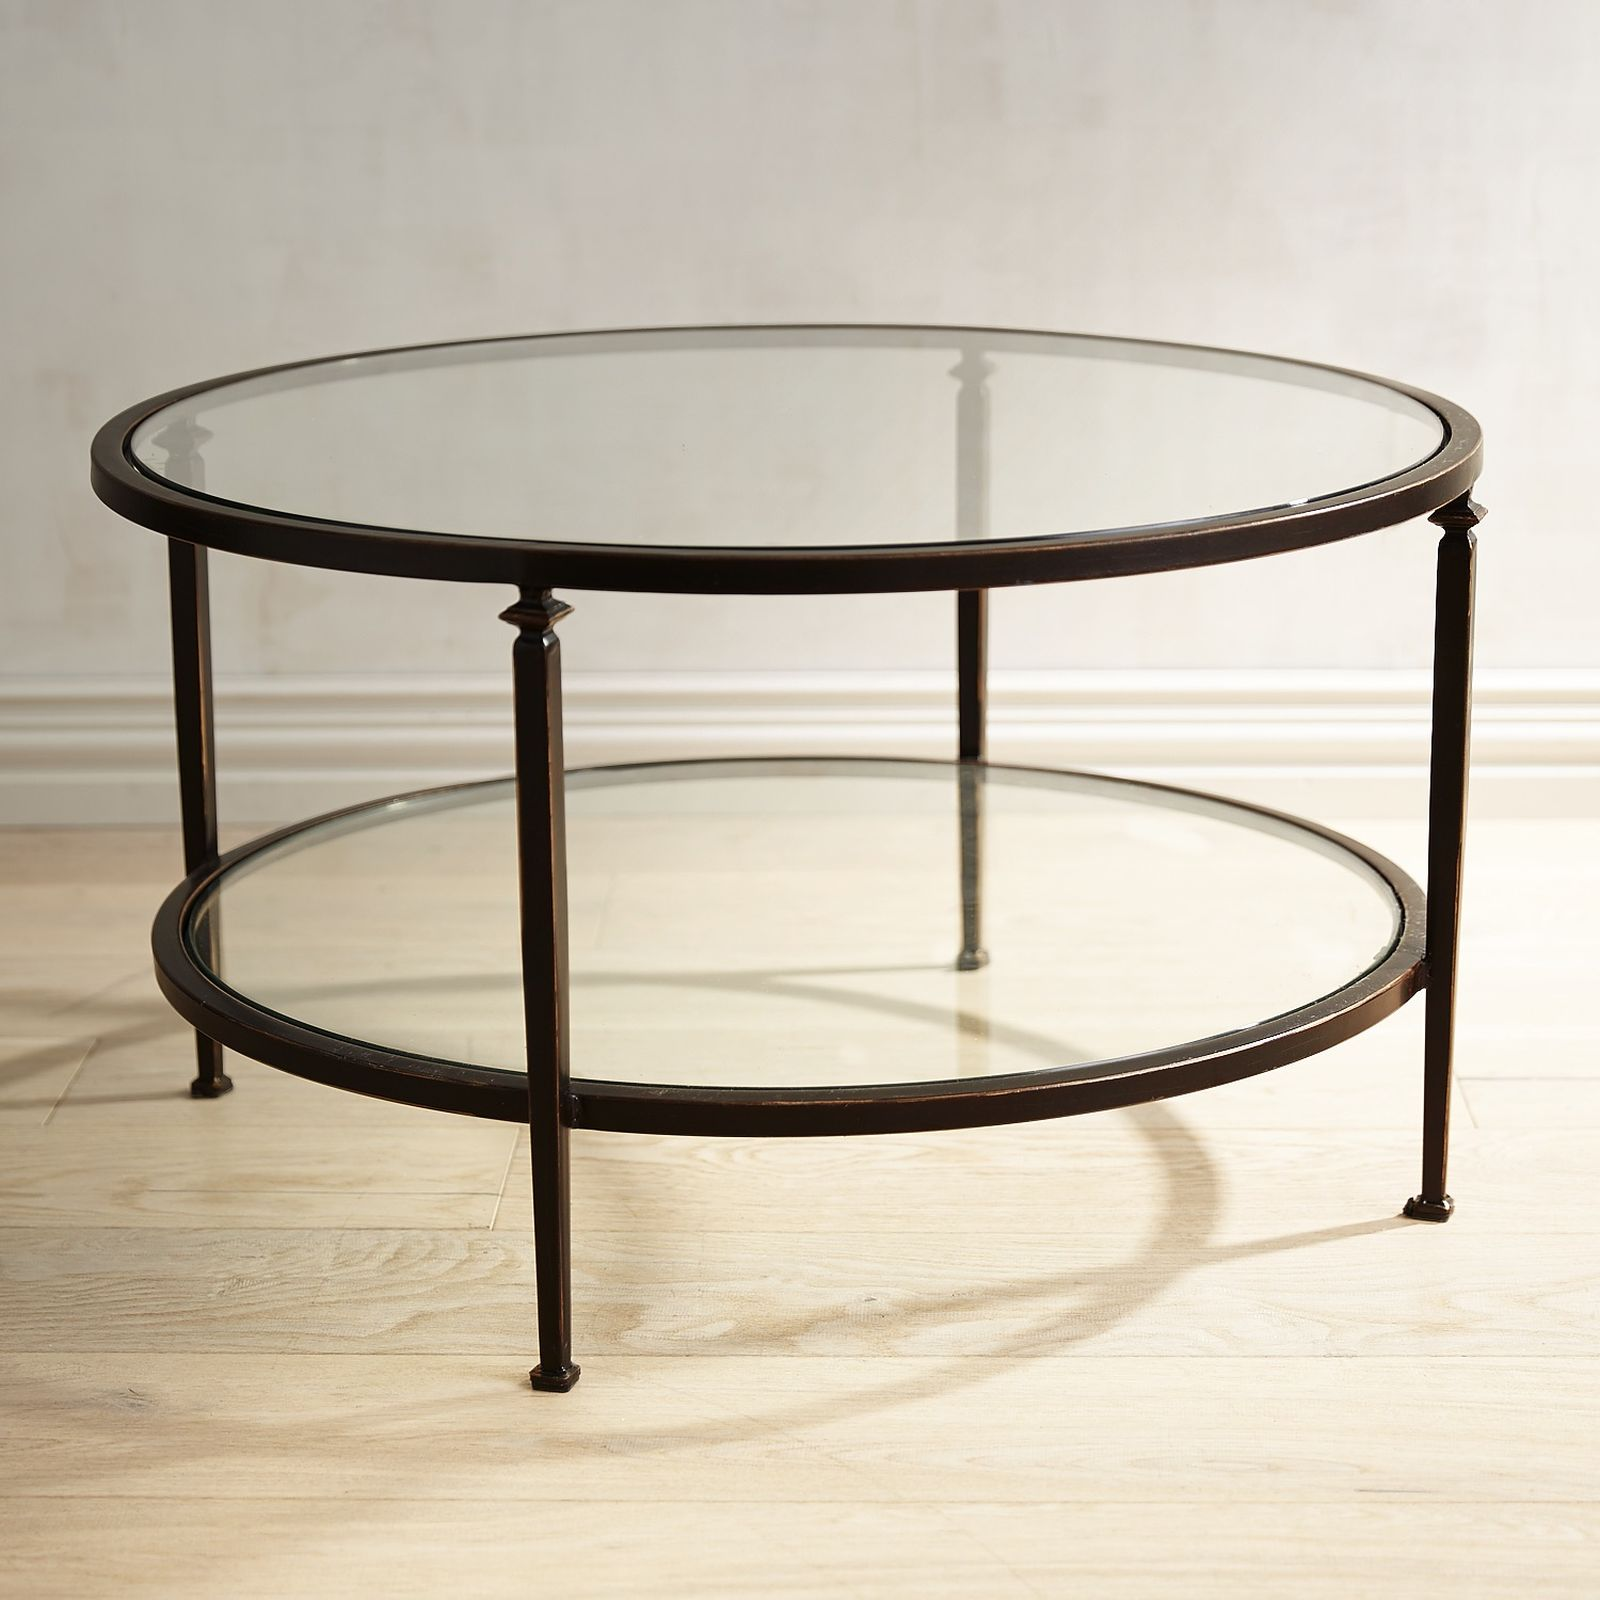 astonishing round glass top coffee table wrought iron lincoln accent tables slim bedside ikea hallway ideas target marble grey end mid century console childrens lamps antique sofa